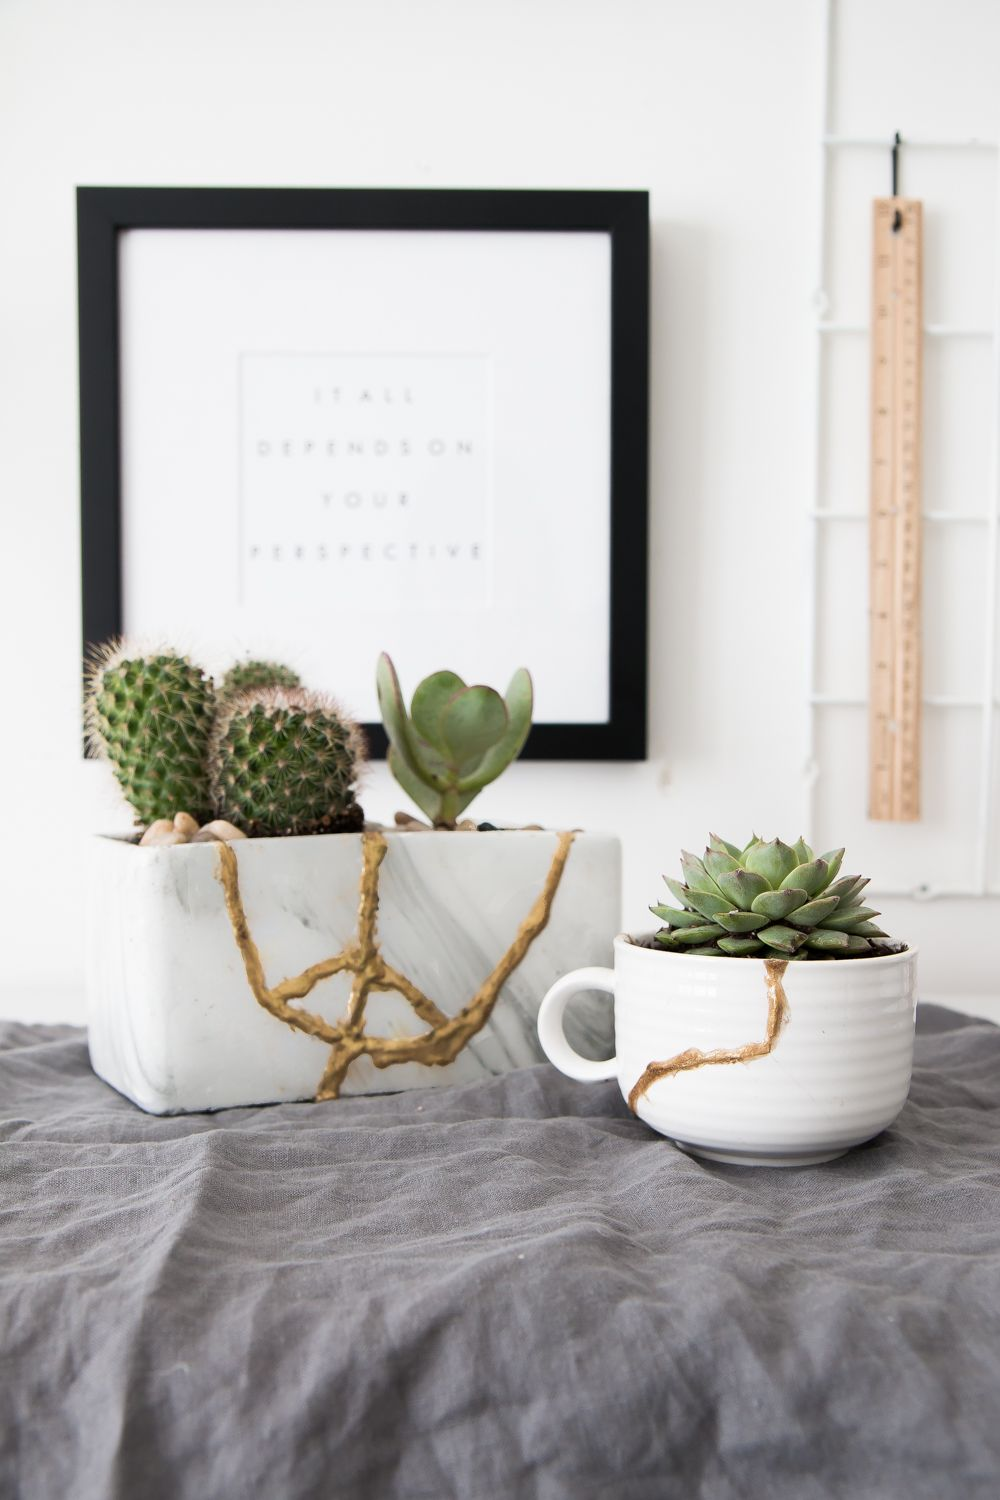 Fix broken ceramics with a kintsugi repair kit from @moraapproved and create some gold planters